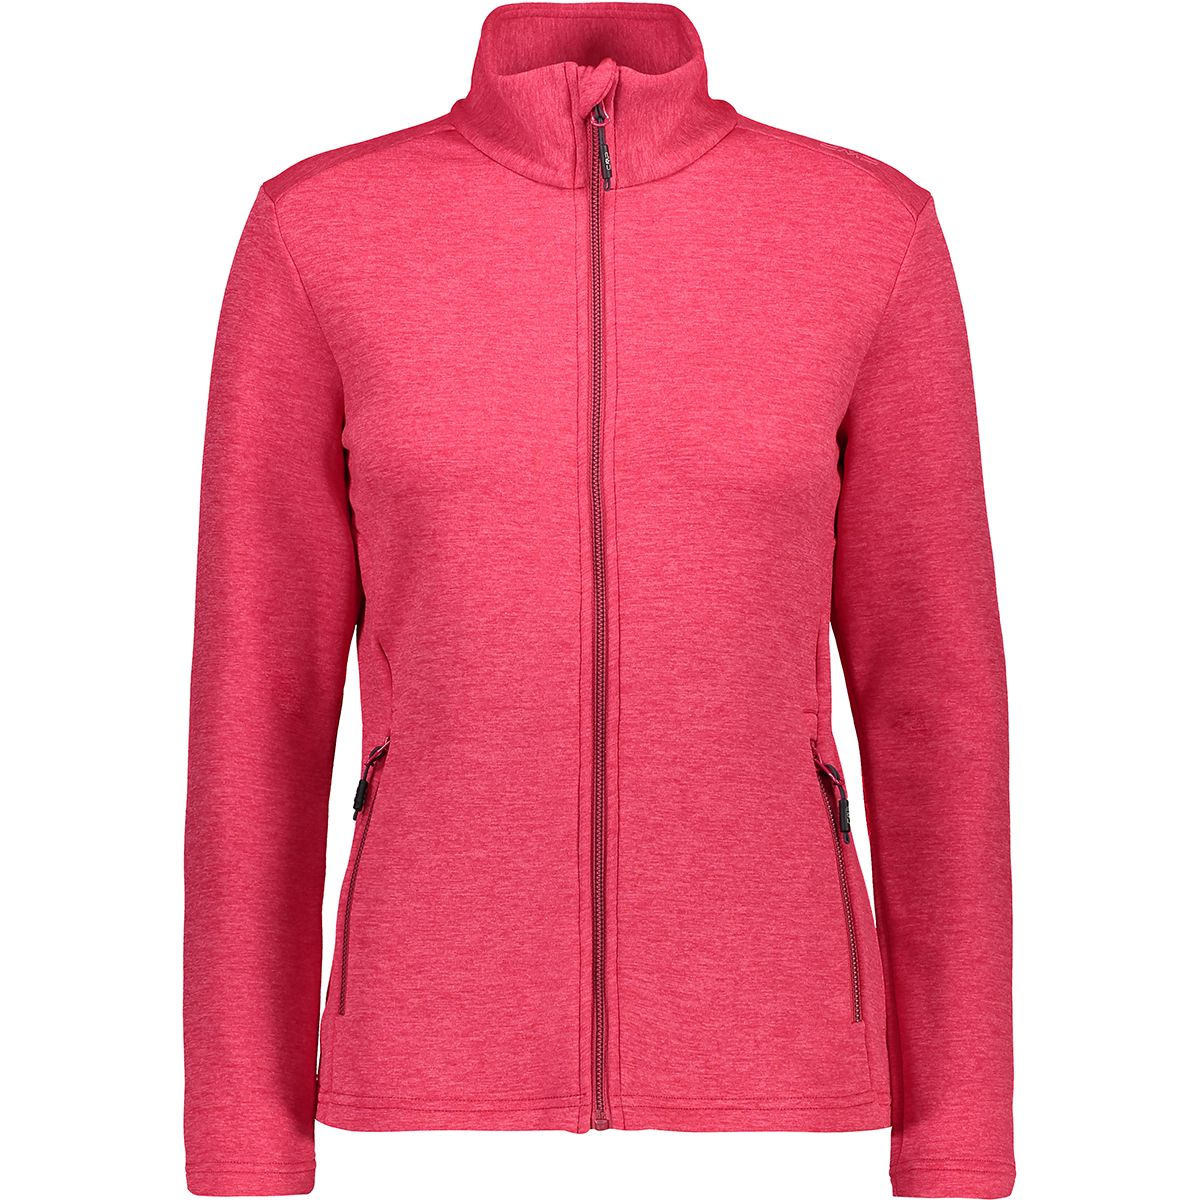 CMP Damen Medium Fleece Jacke (Größe XS, Pink) | Fleecejacken > Damen